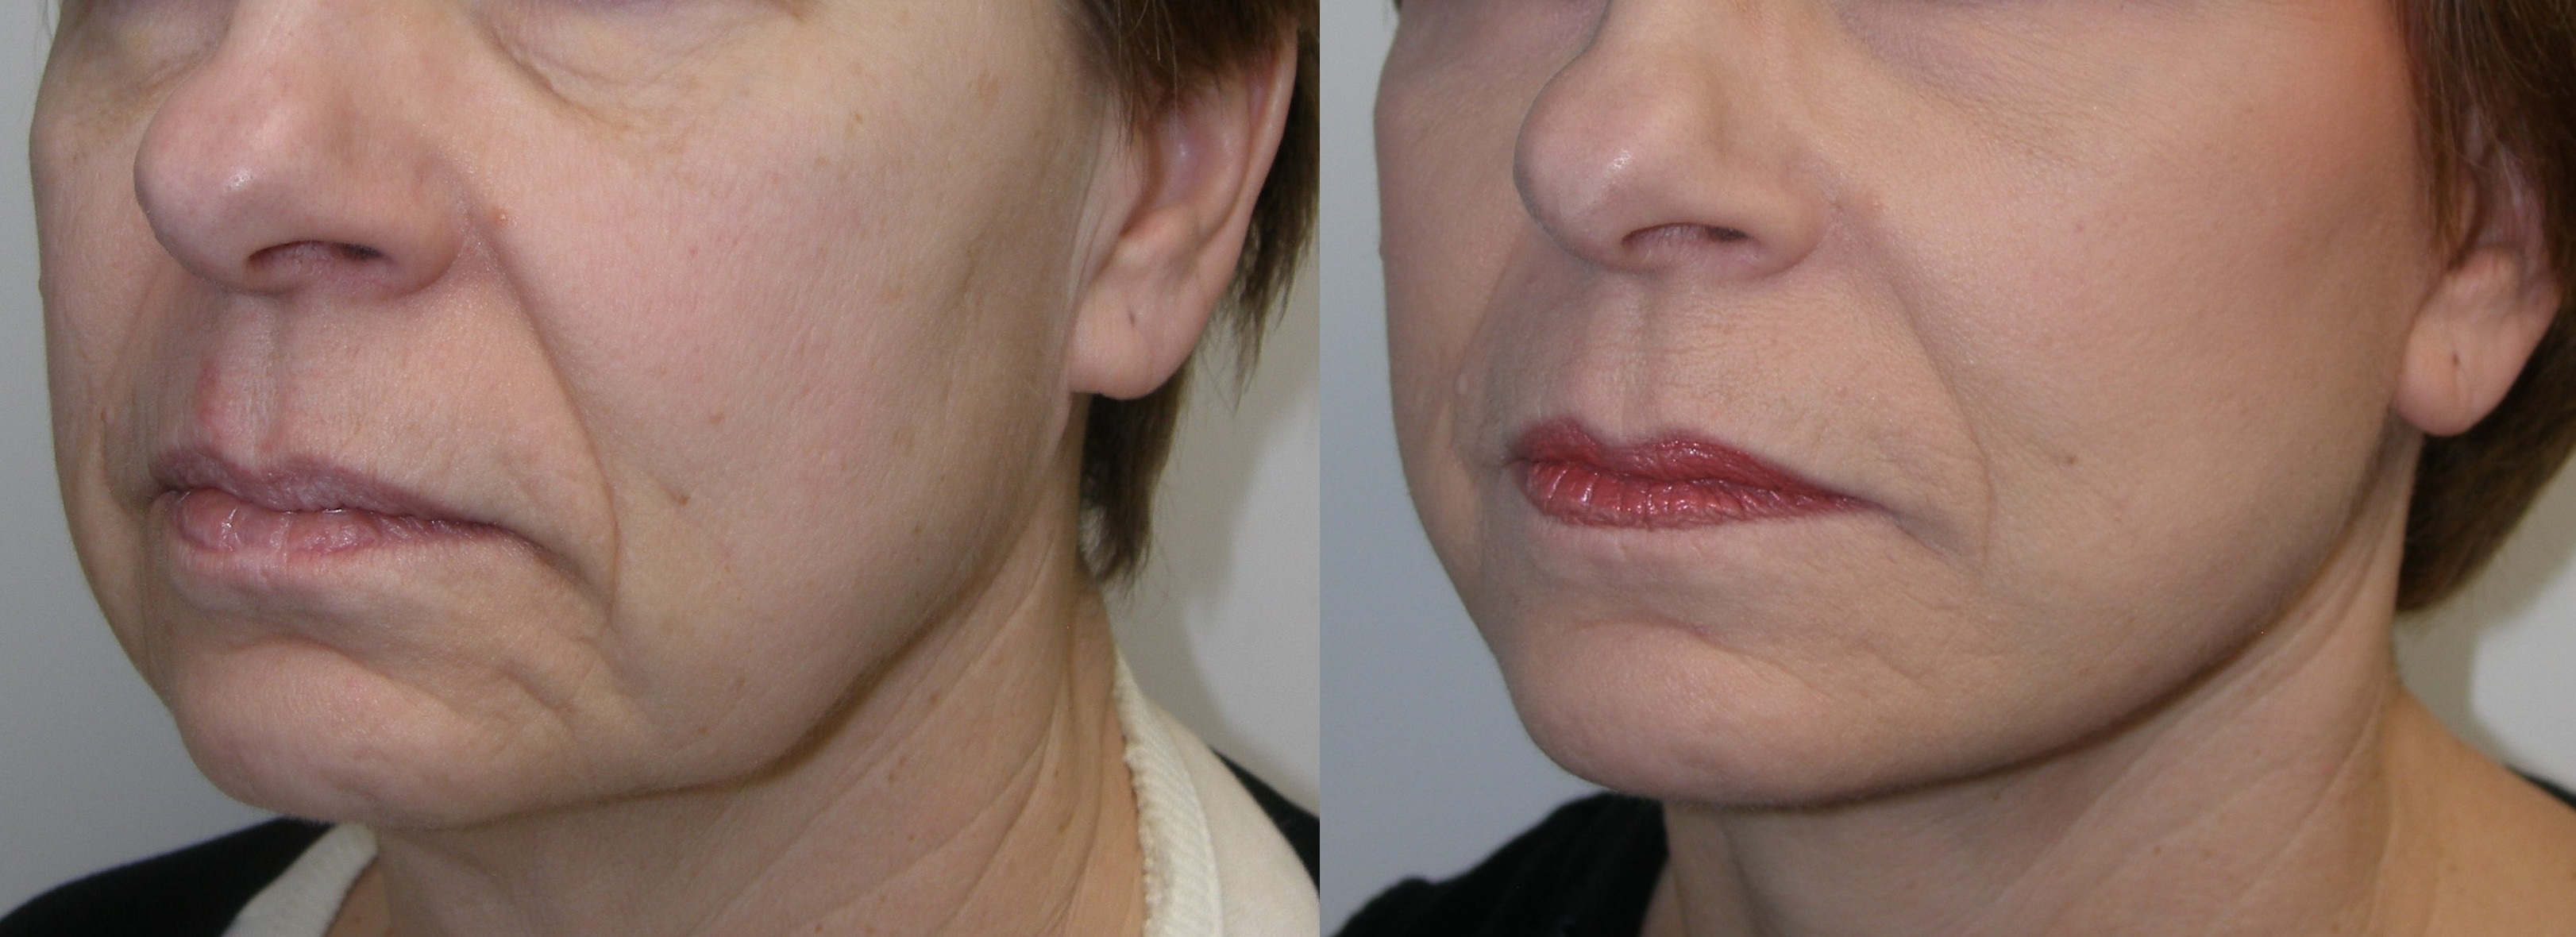 Sagging Jowls | Jaw Line | Castleknock Cosmetic Clinic